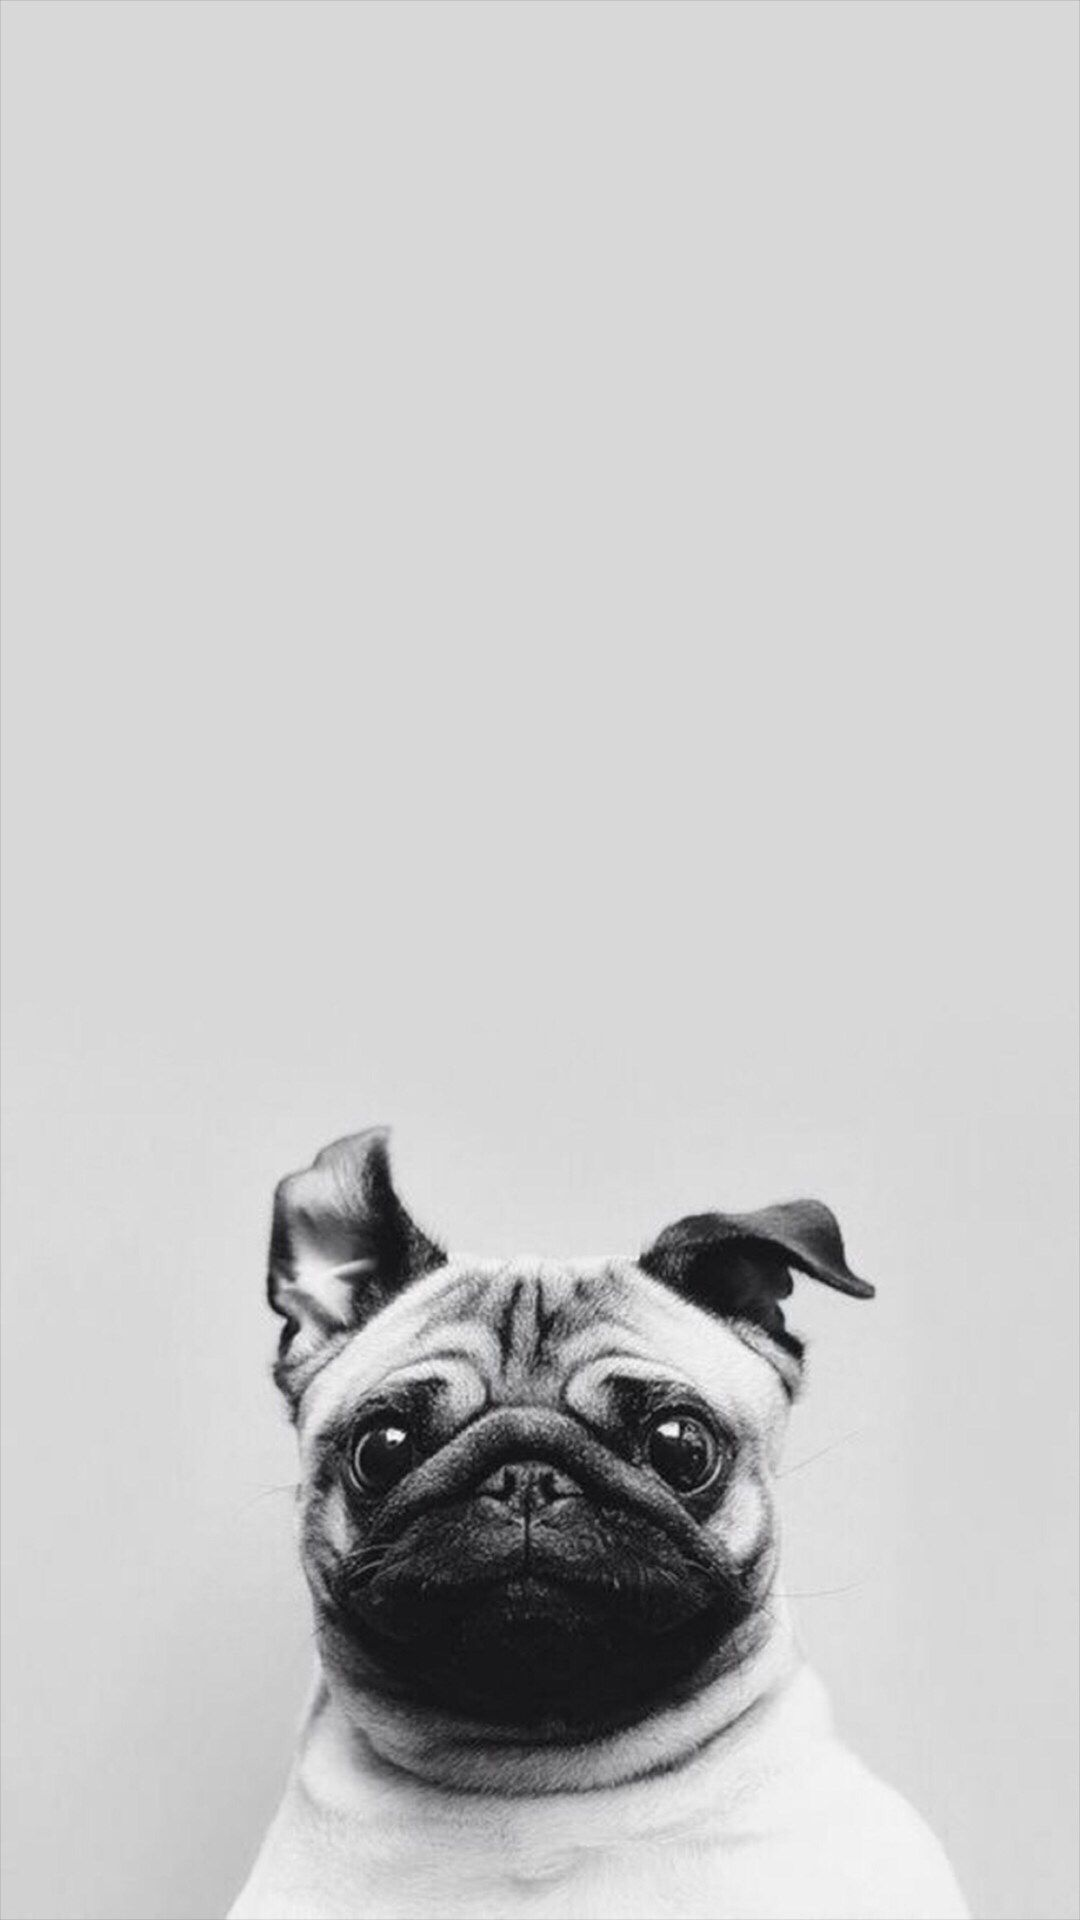 Funny Puppy Dog Simple Macro iPhone 8 Wallpapers